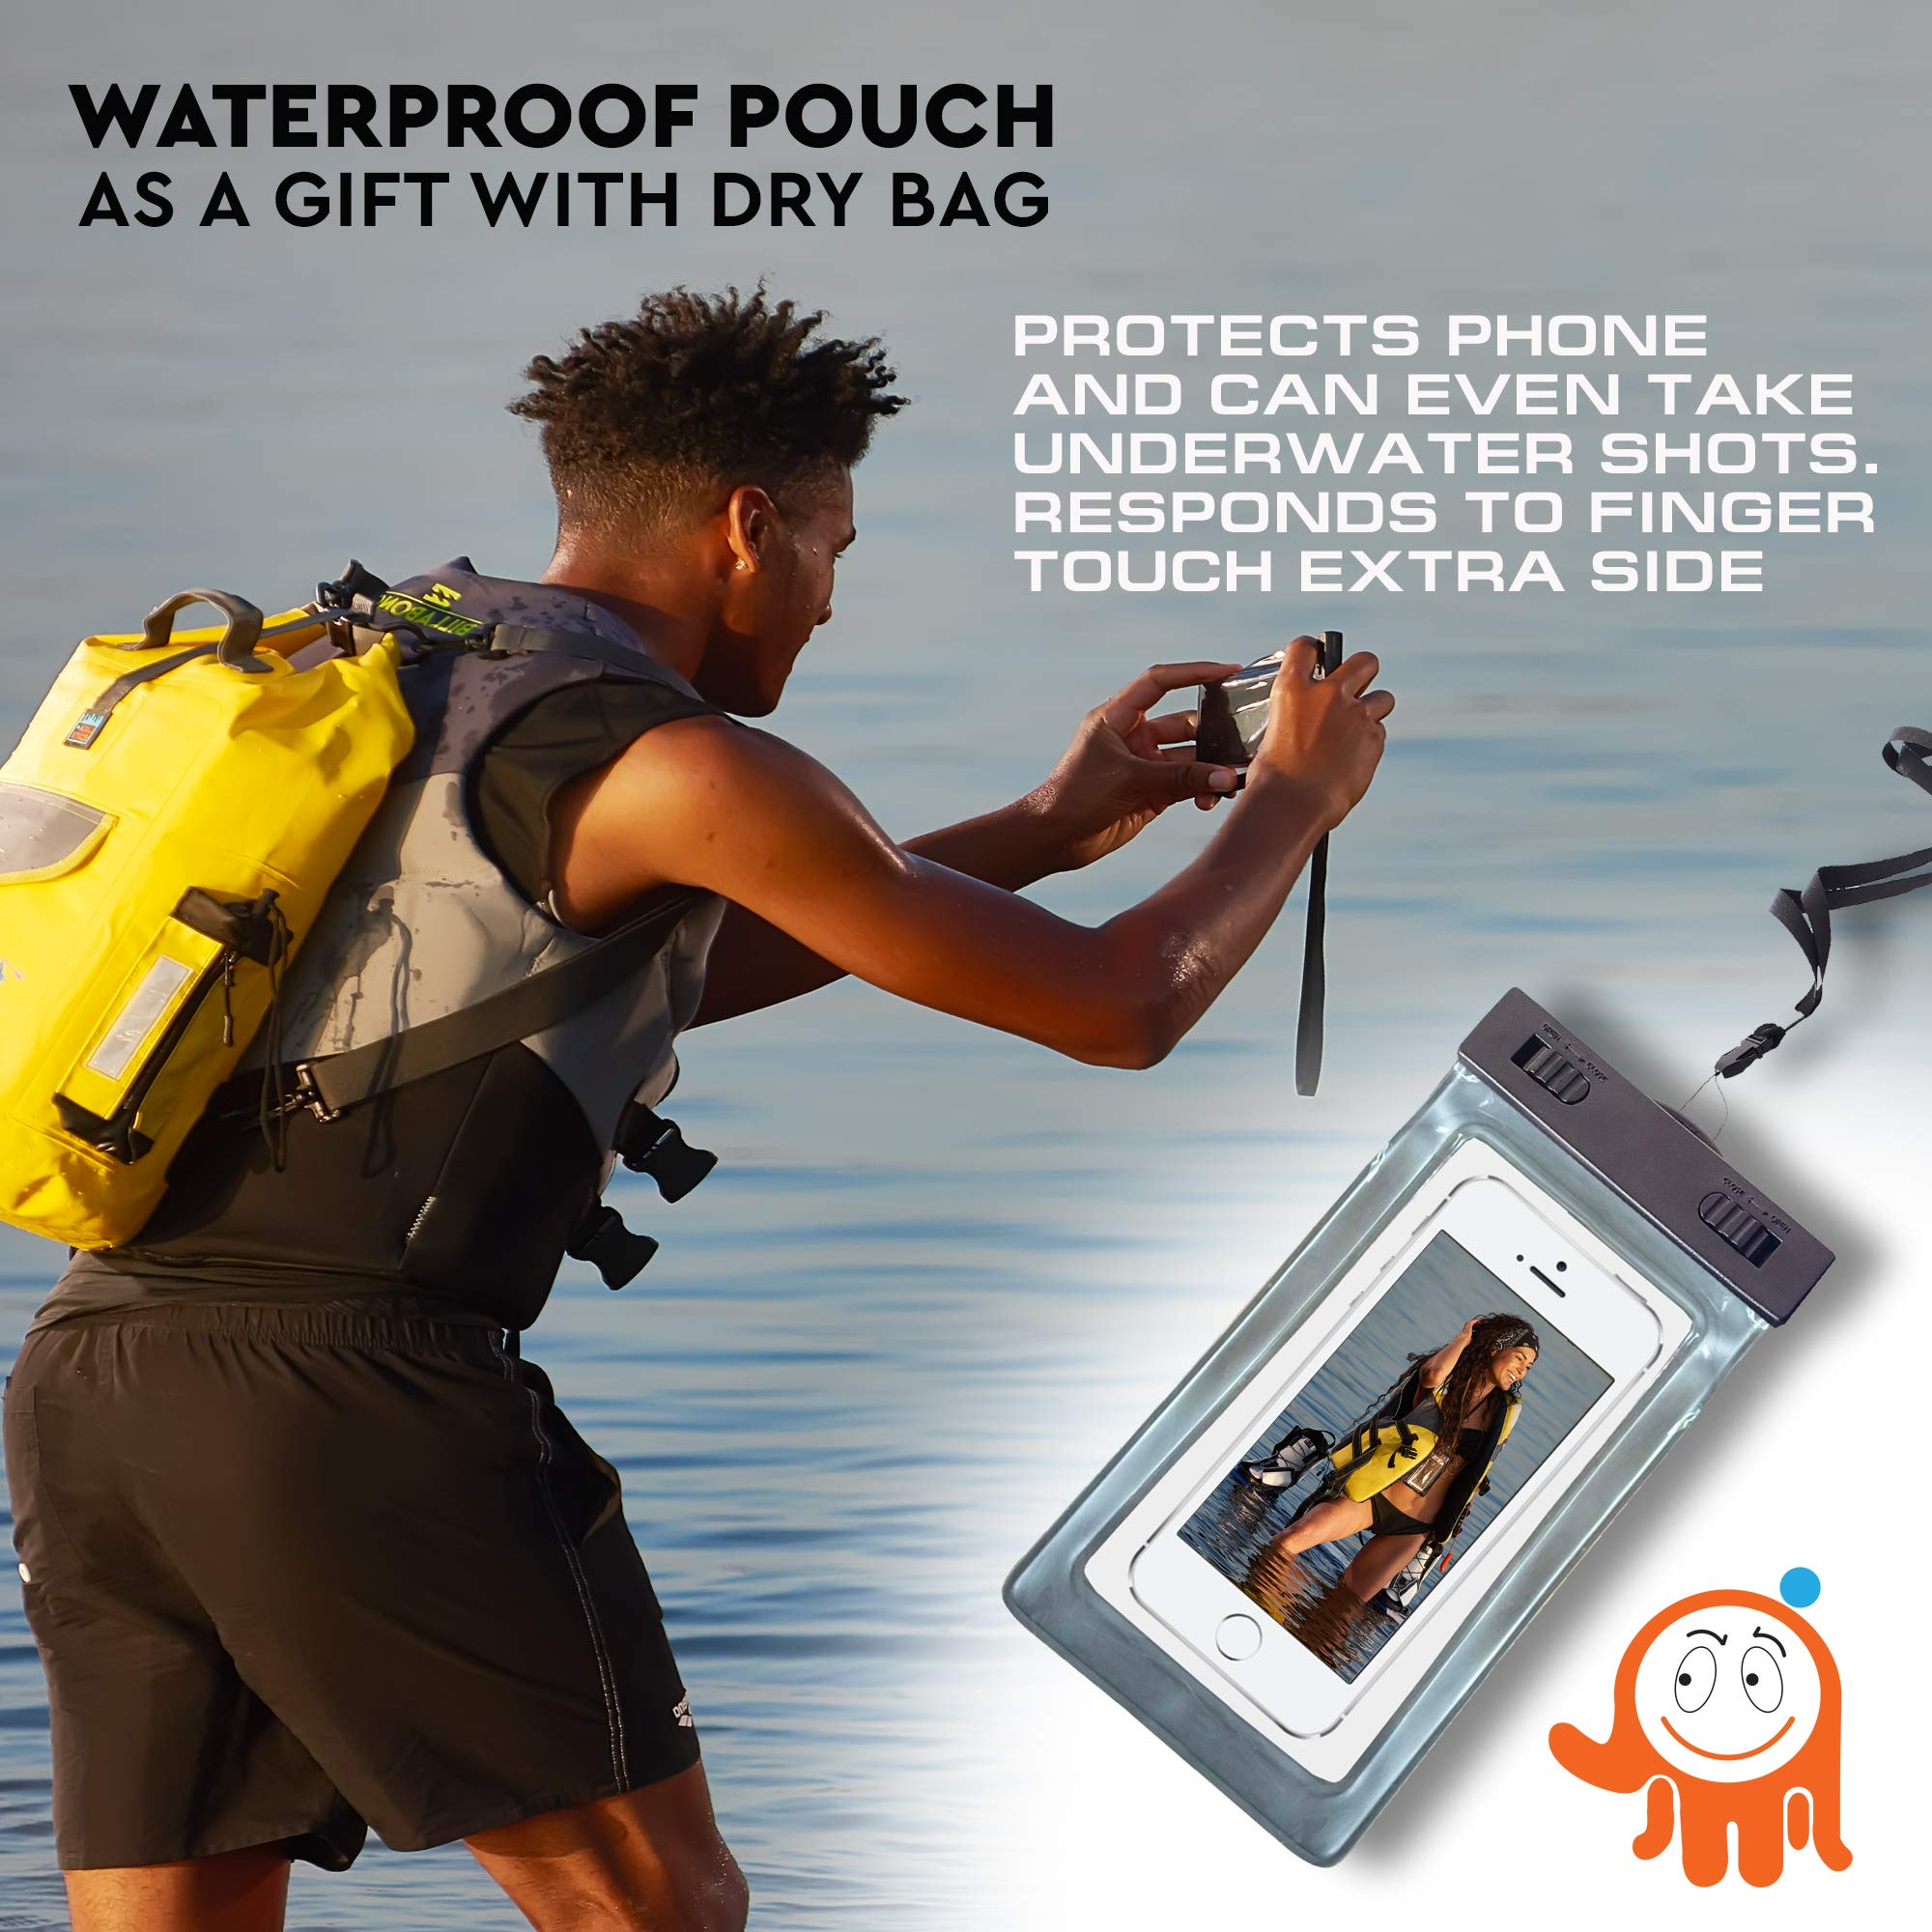 Luck route Waterproof Dry Bag with Backpack Straps and Pockets – Floating  DryBag for Beach ... 1461c57cef8ae